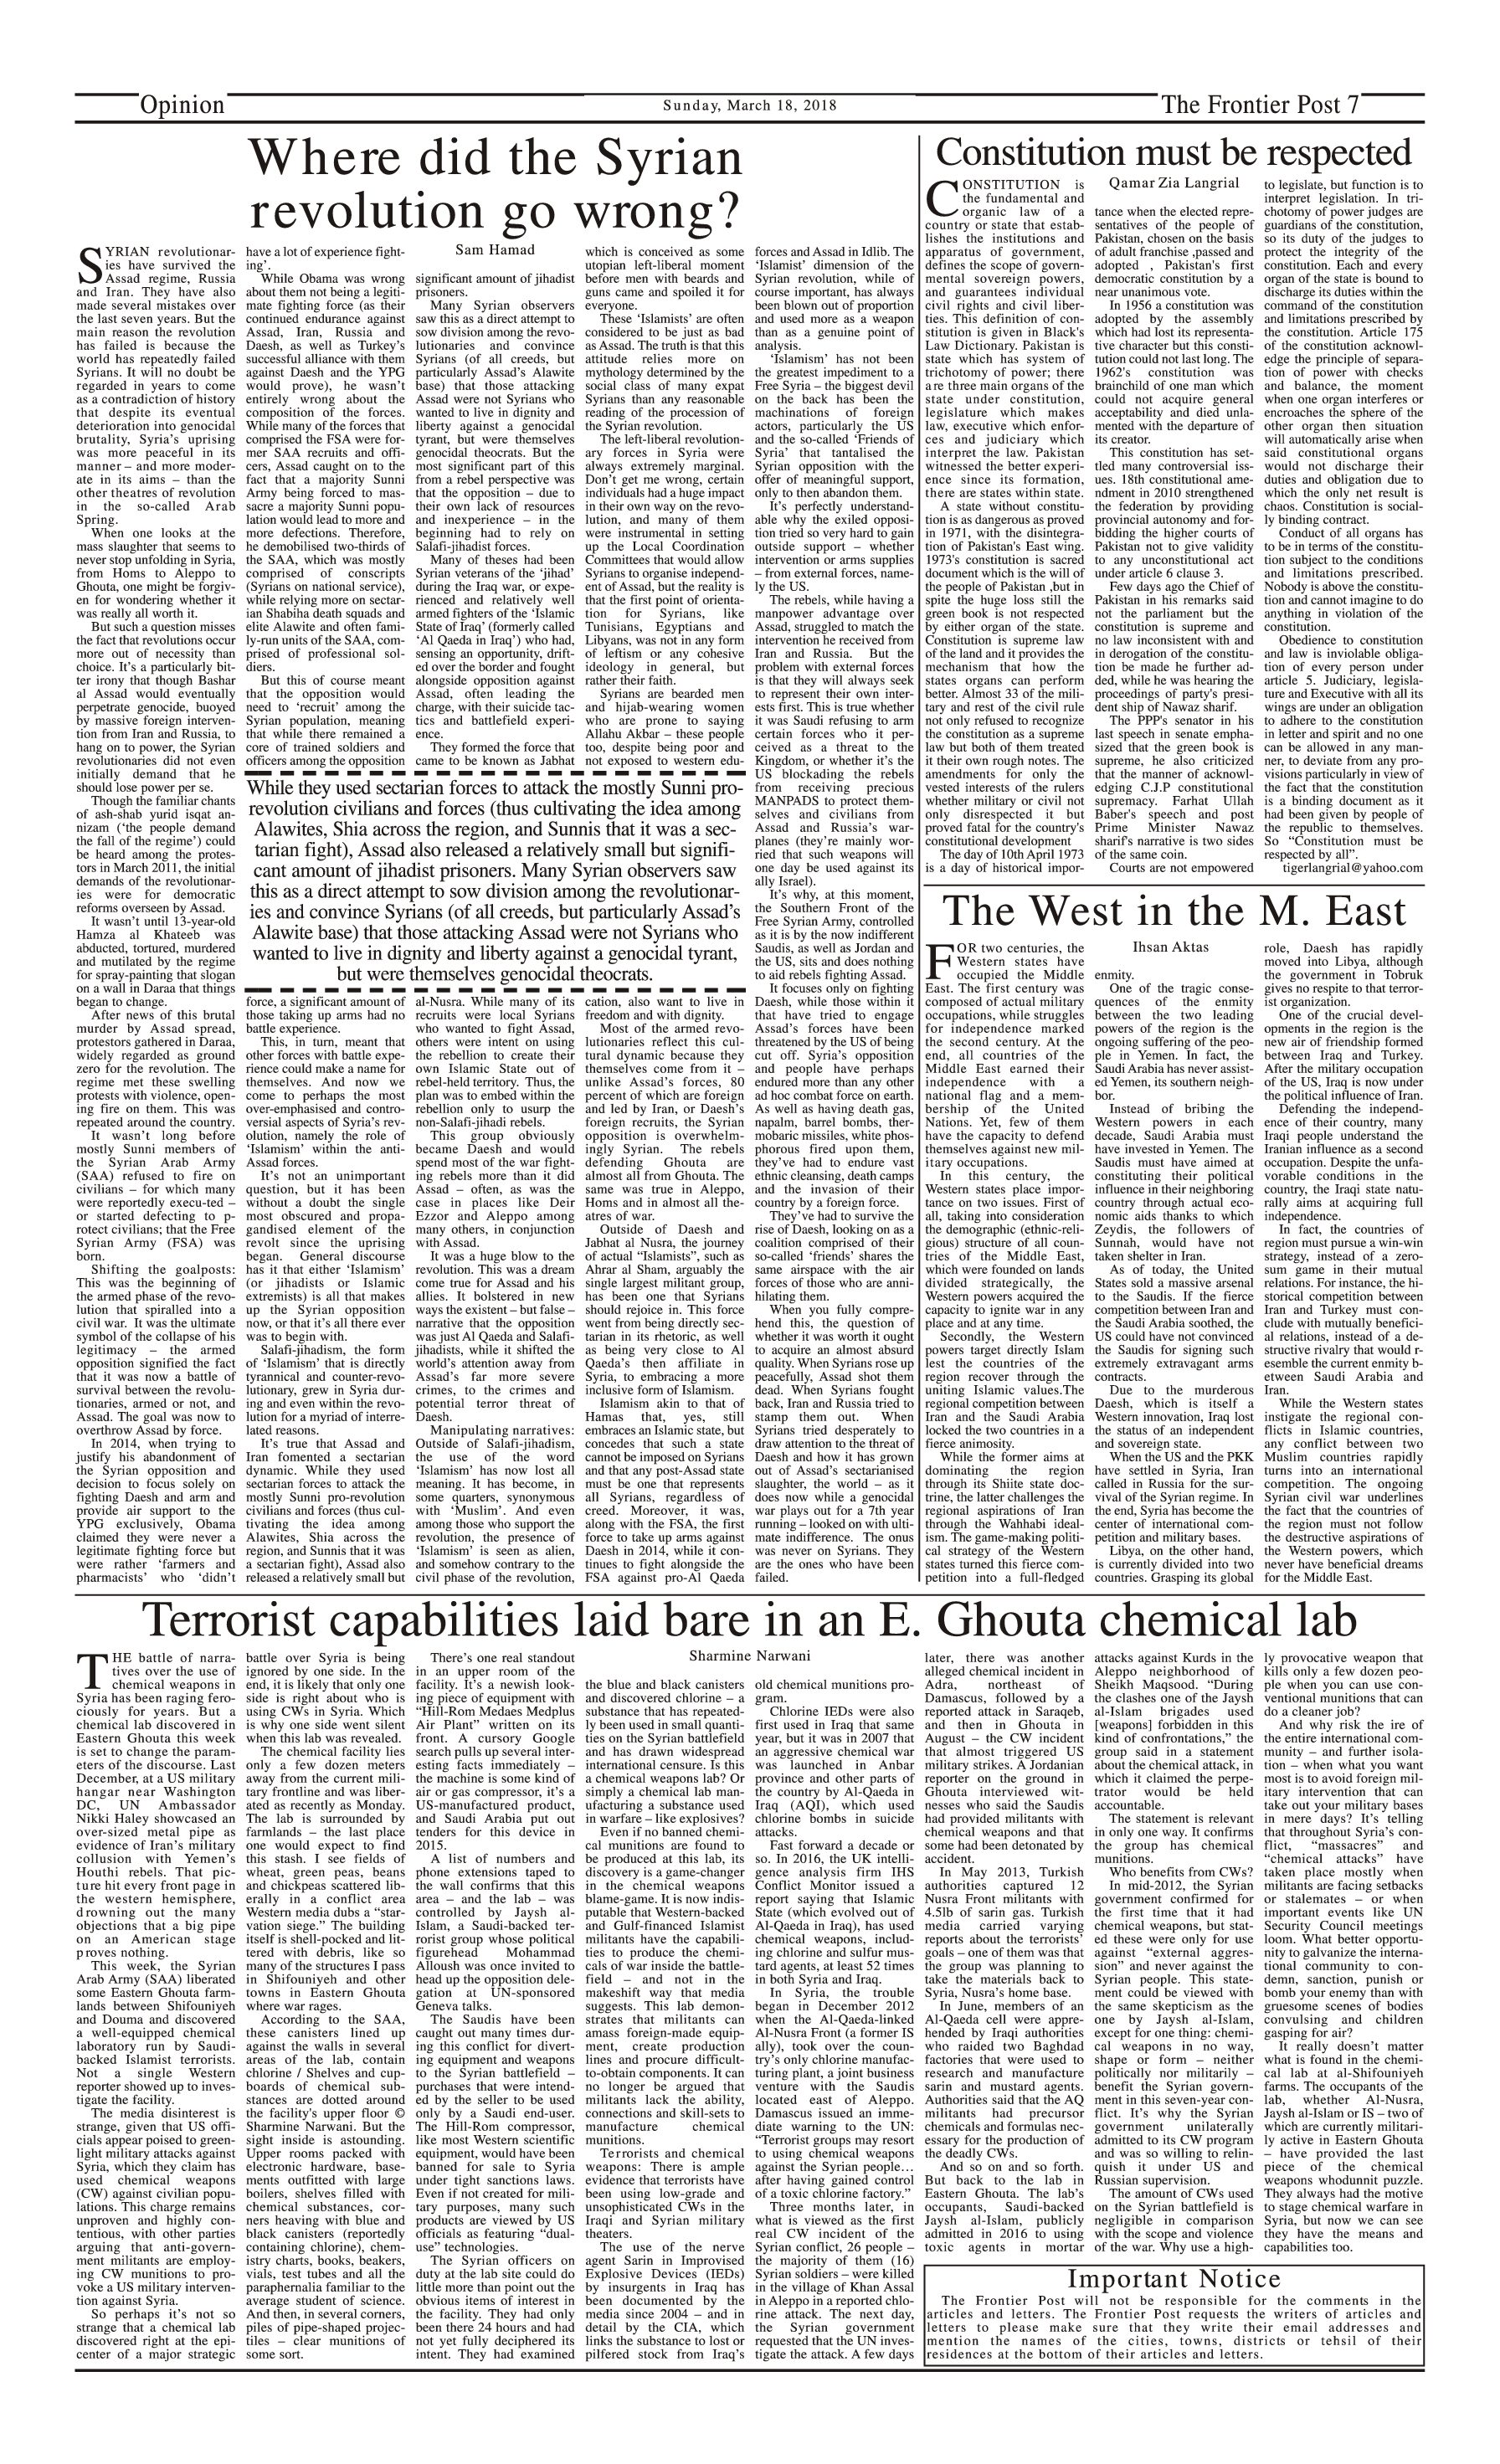 Opinion Page 18-3